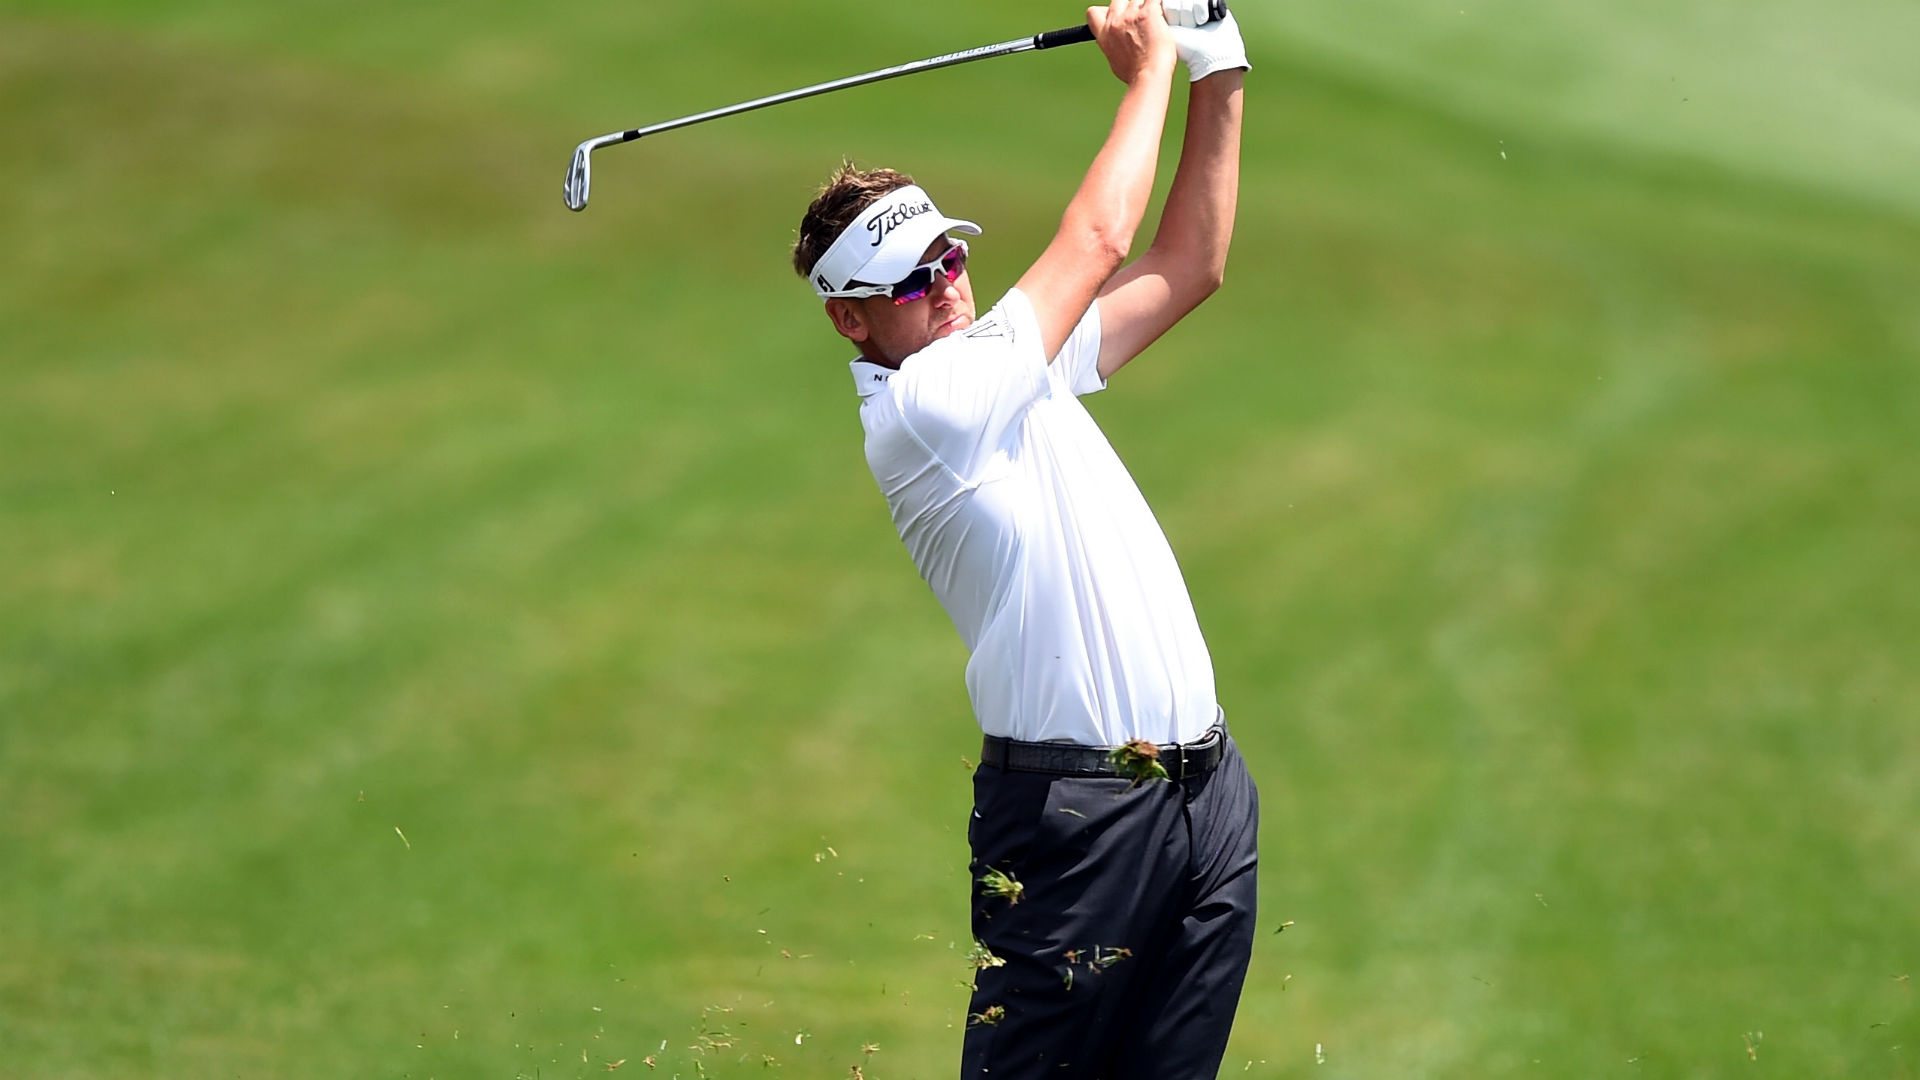 Poulter beats Hossler in Houston playoff to earn final Masters spot